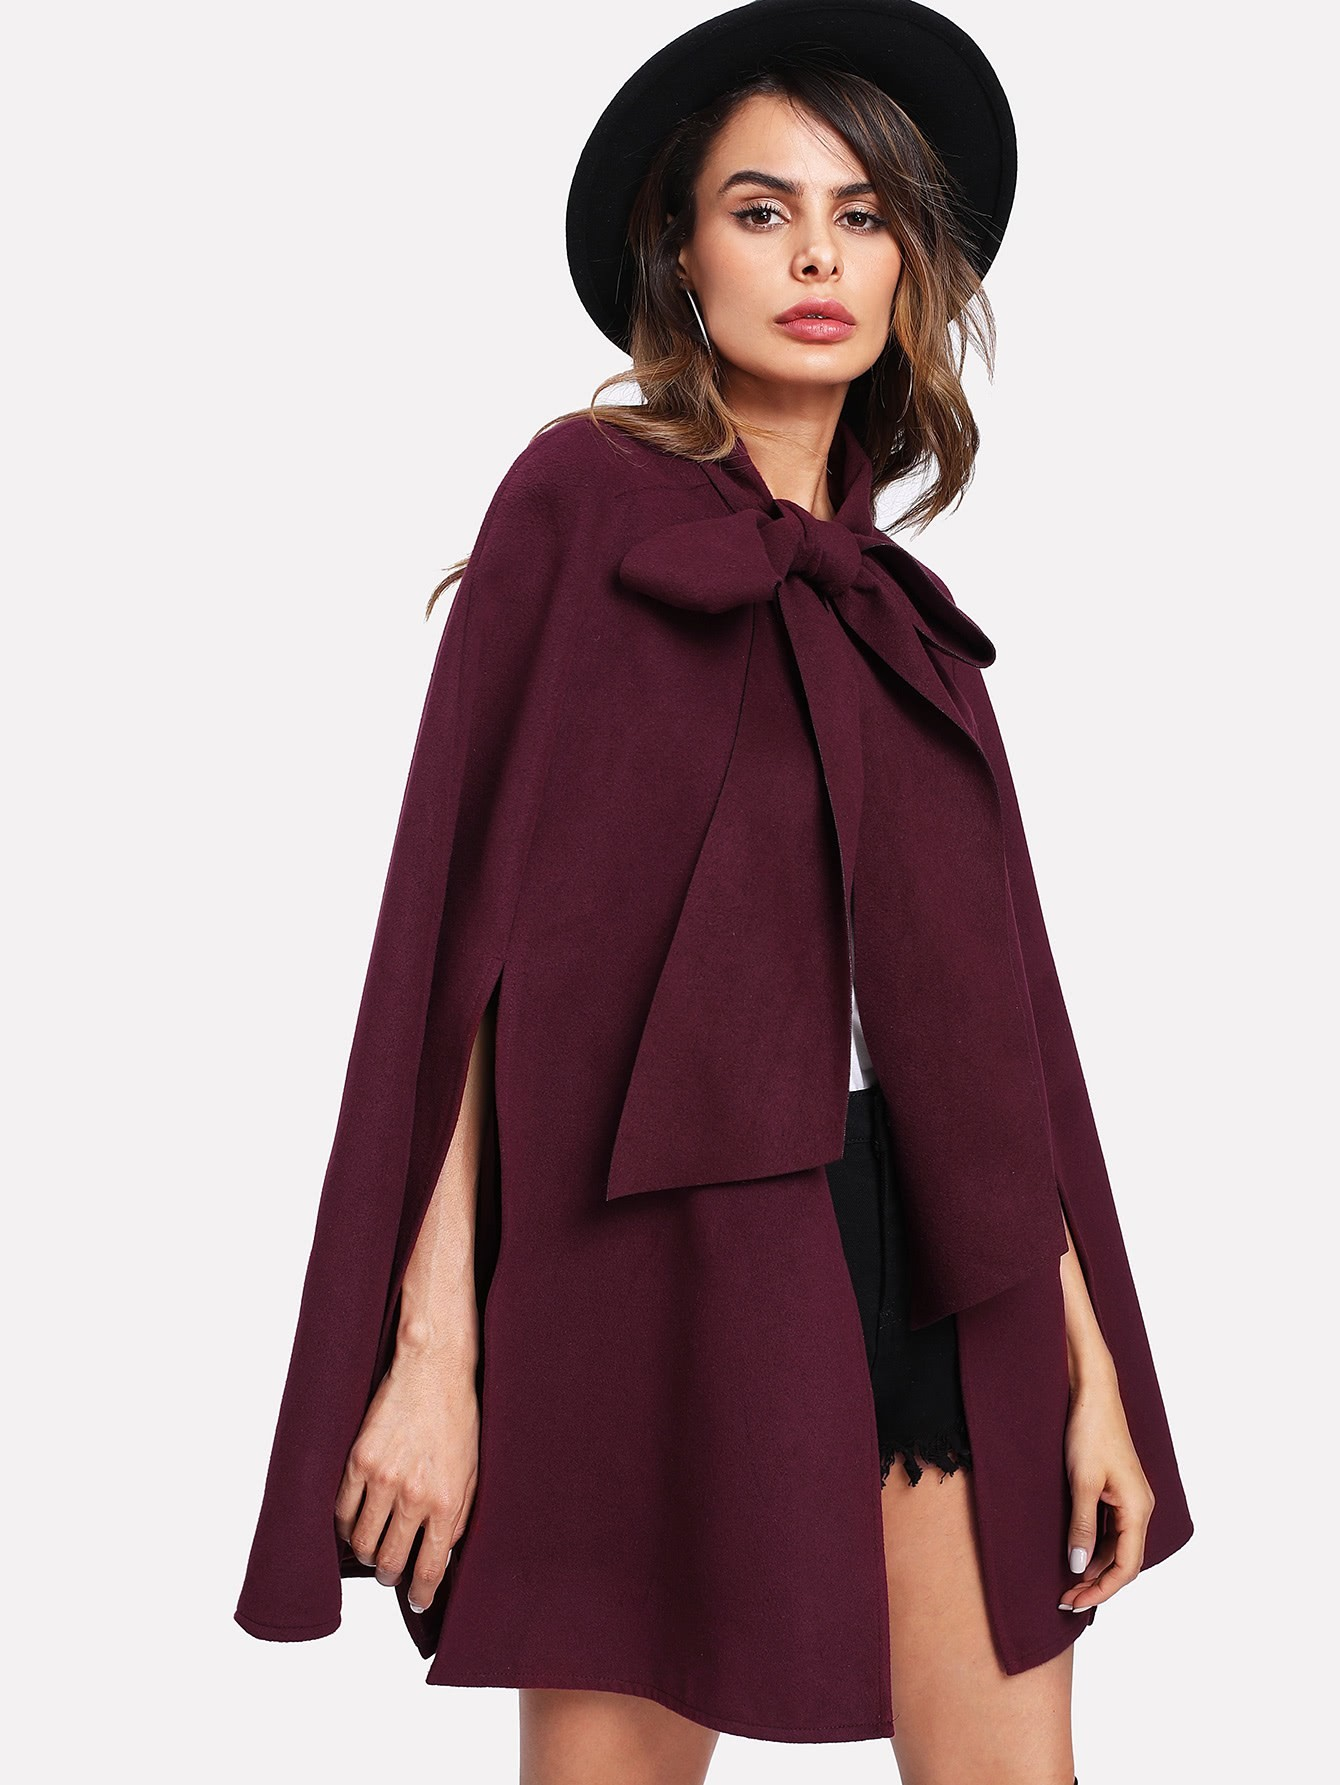 Slit Back Tied Front Cape Coat black open front sleeveless cape coat